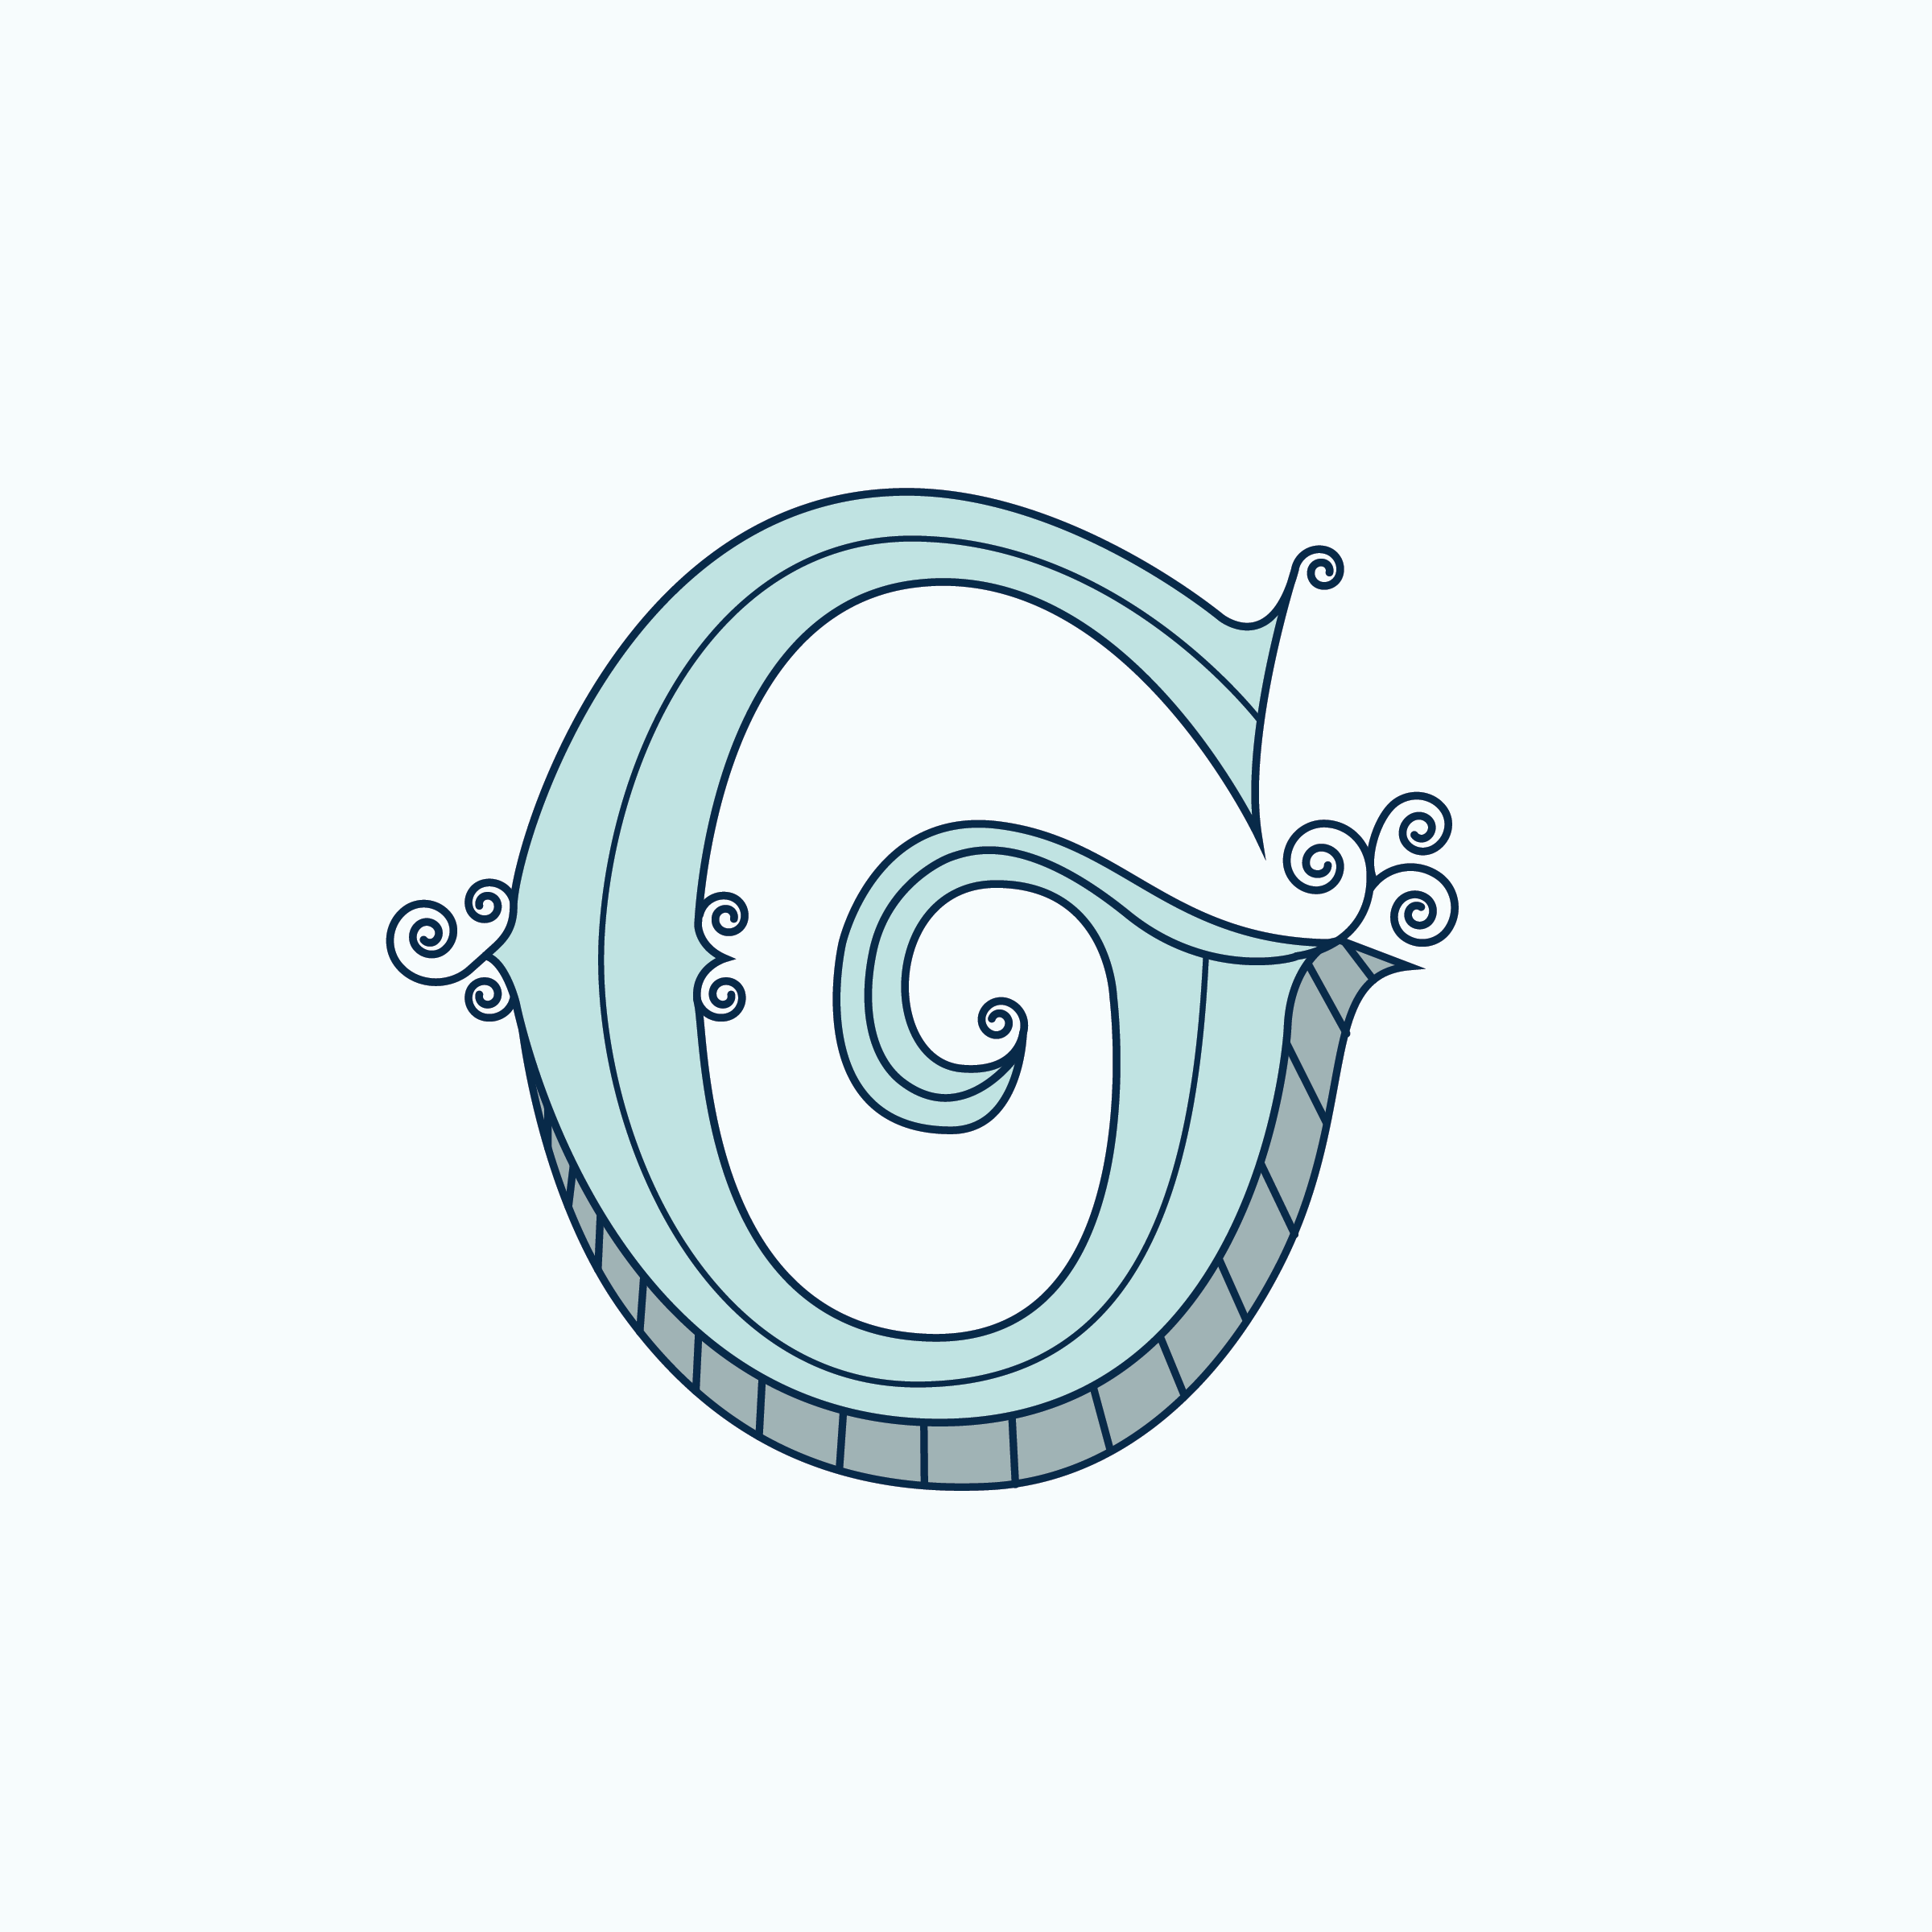 G-01.png